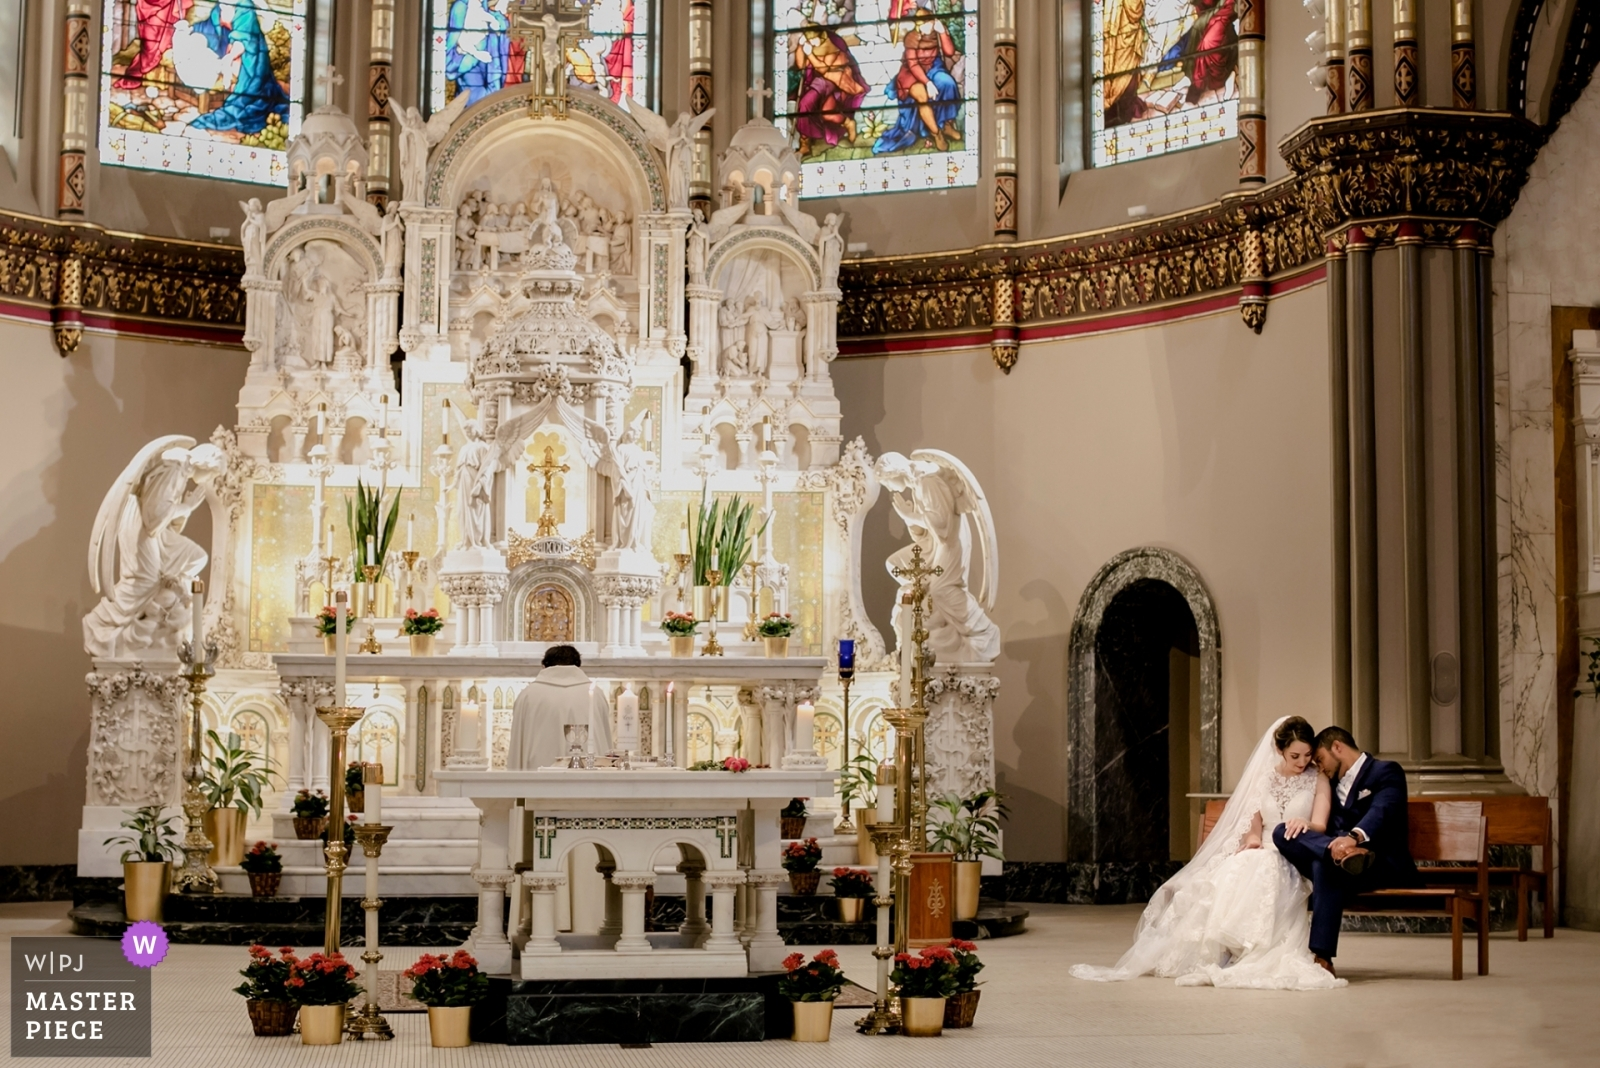 Bride and groom in the church - Chicago, Illinois Wedding Photography -  | St. Vincent de Paul church, Chicago